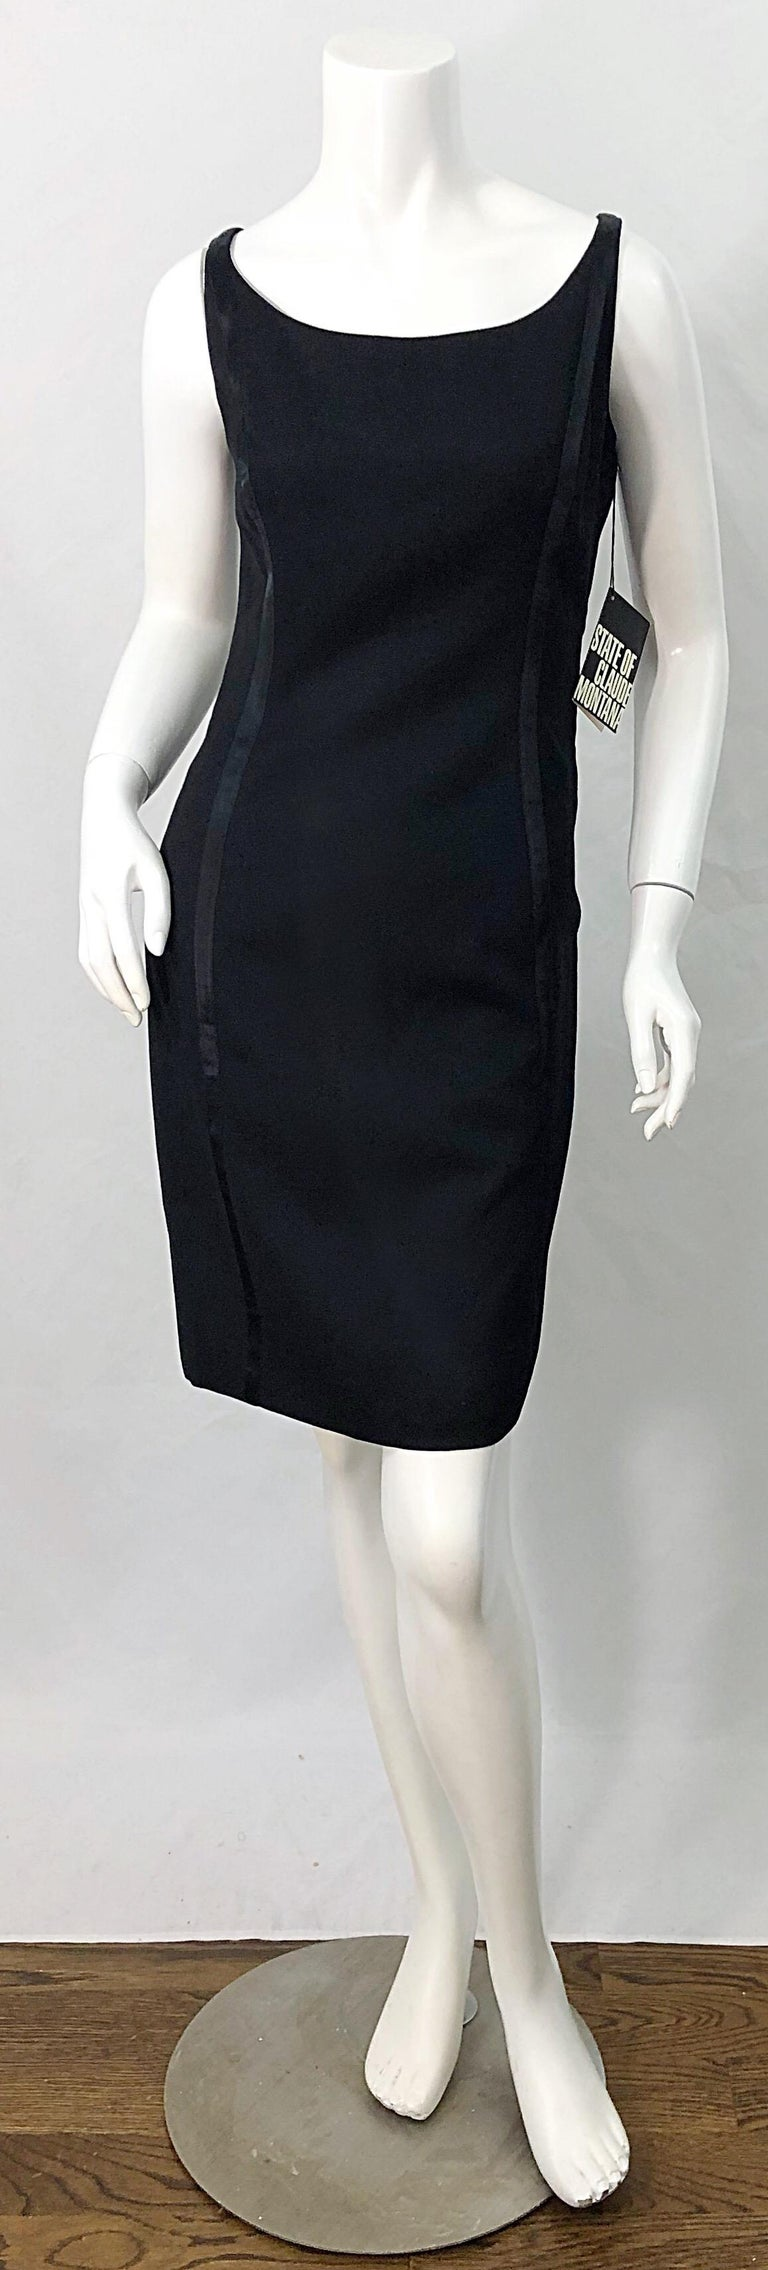 New with original tags deadstock 1990s CLAUDE MONTANA little black dress ! Features a soft lightweight wool, with satin tuxedo stripes up the front and back sides. Fully lined. Hidden zipper up the back with hook-and-eye closure. The perfect little